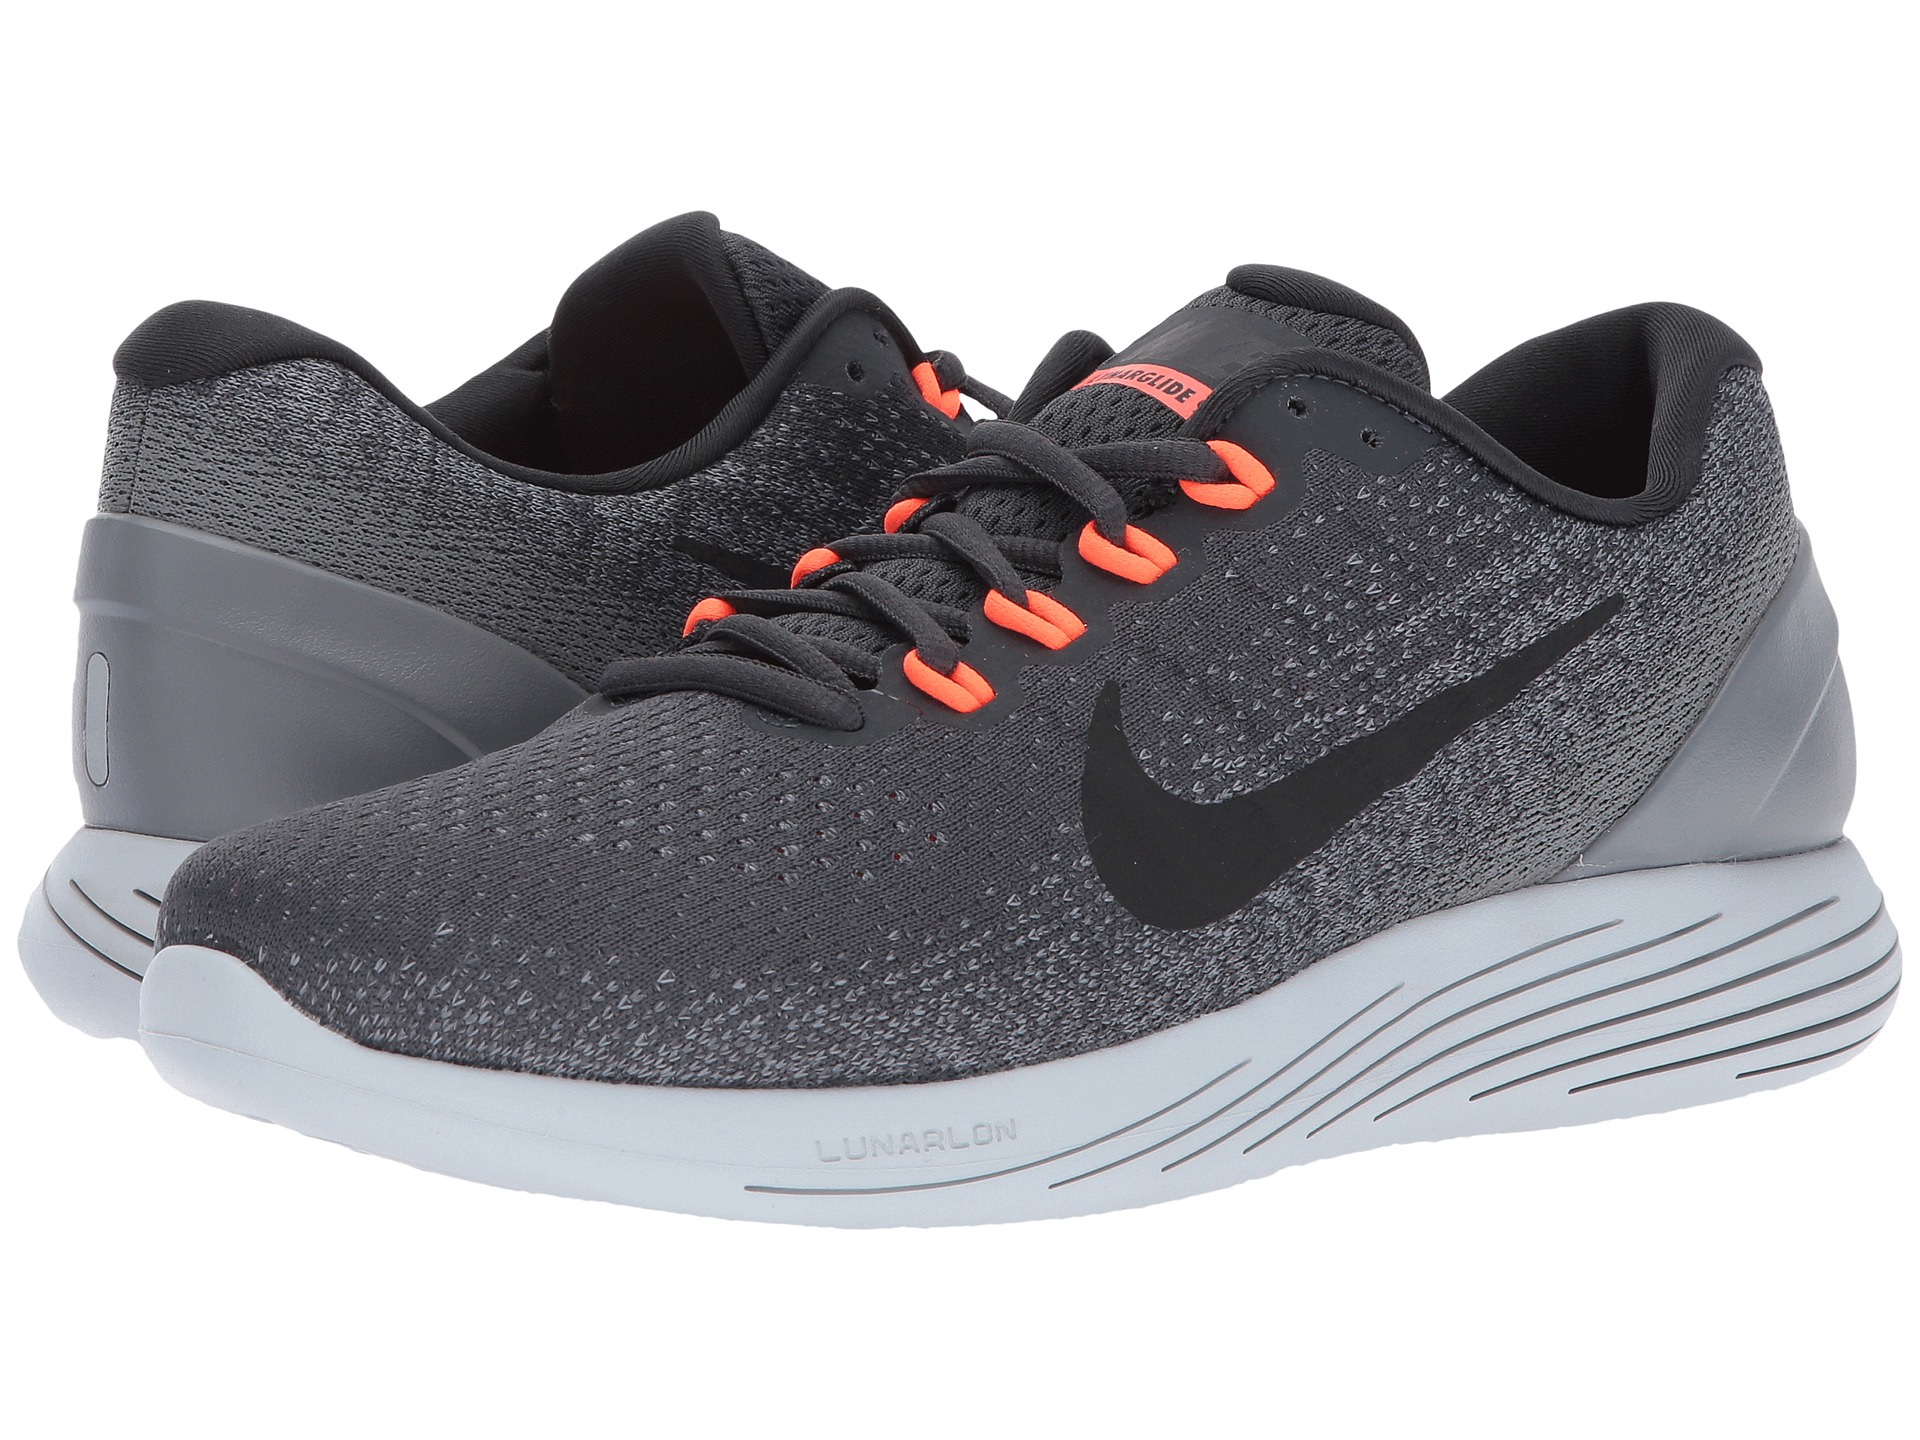 new style 2a12b 59aa7 nike boys lunarglide 3